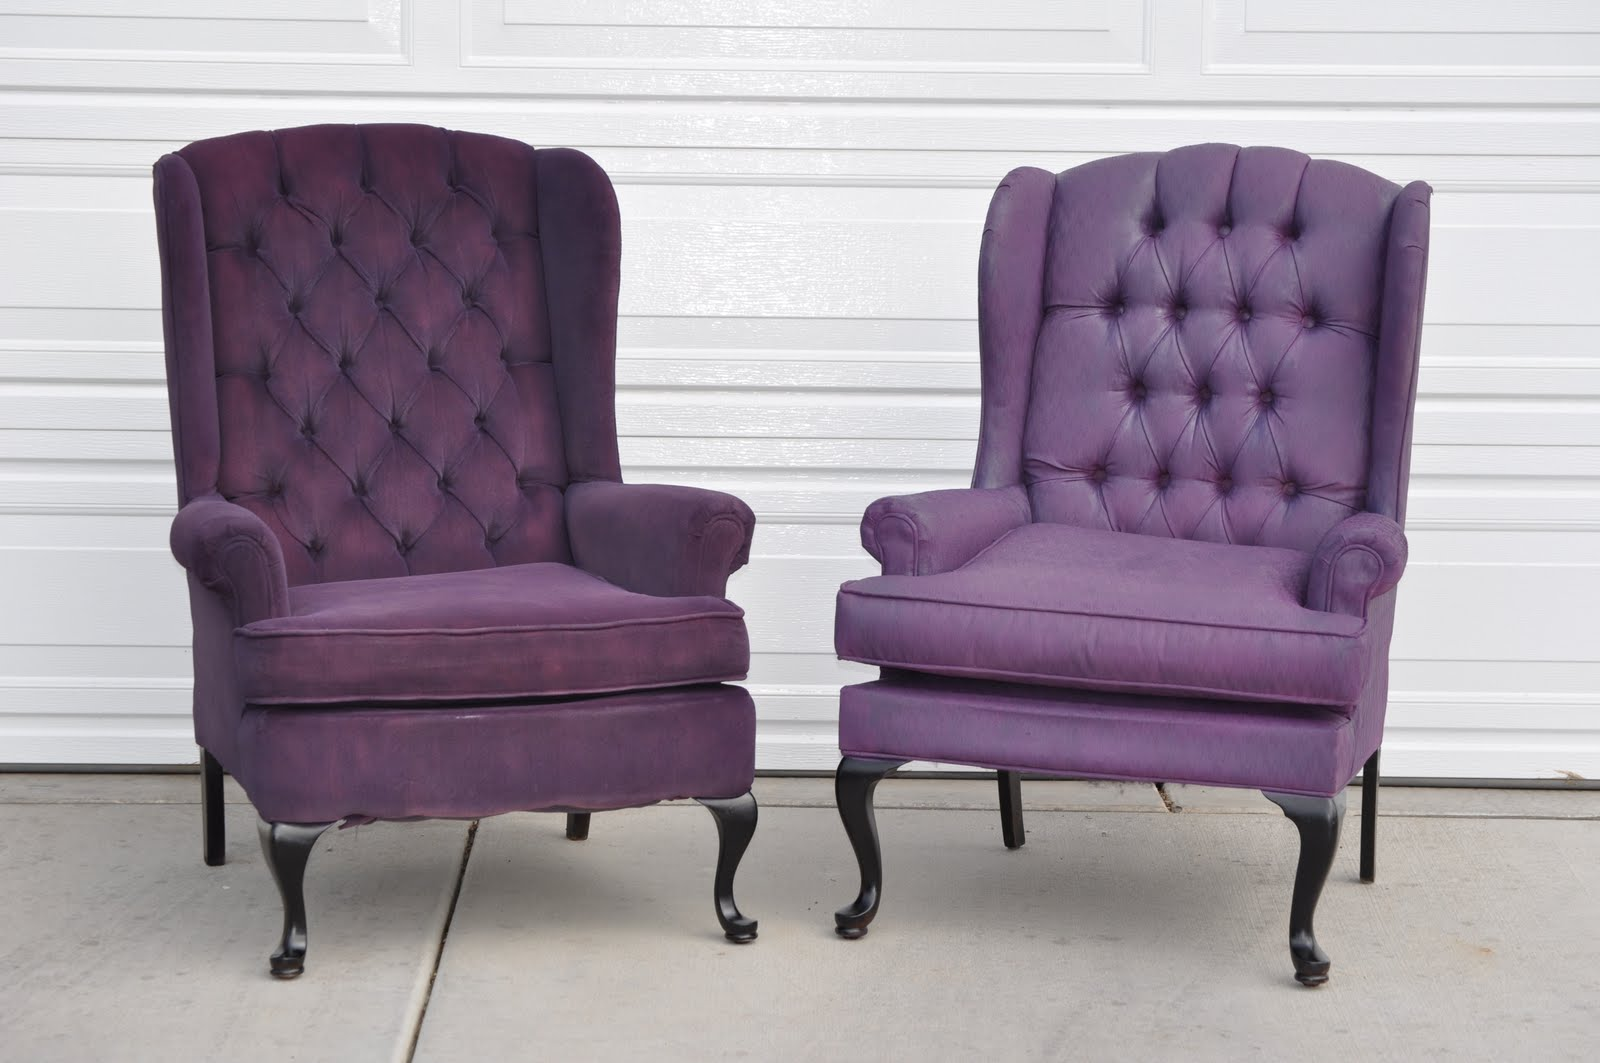 Lavender Chair Cassandra Design Delicious Purple Tufted Halloween